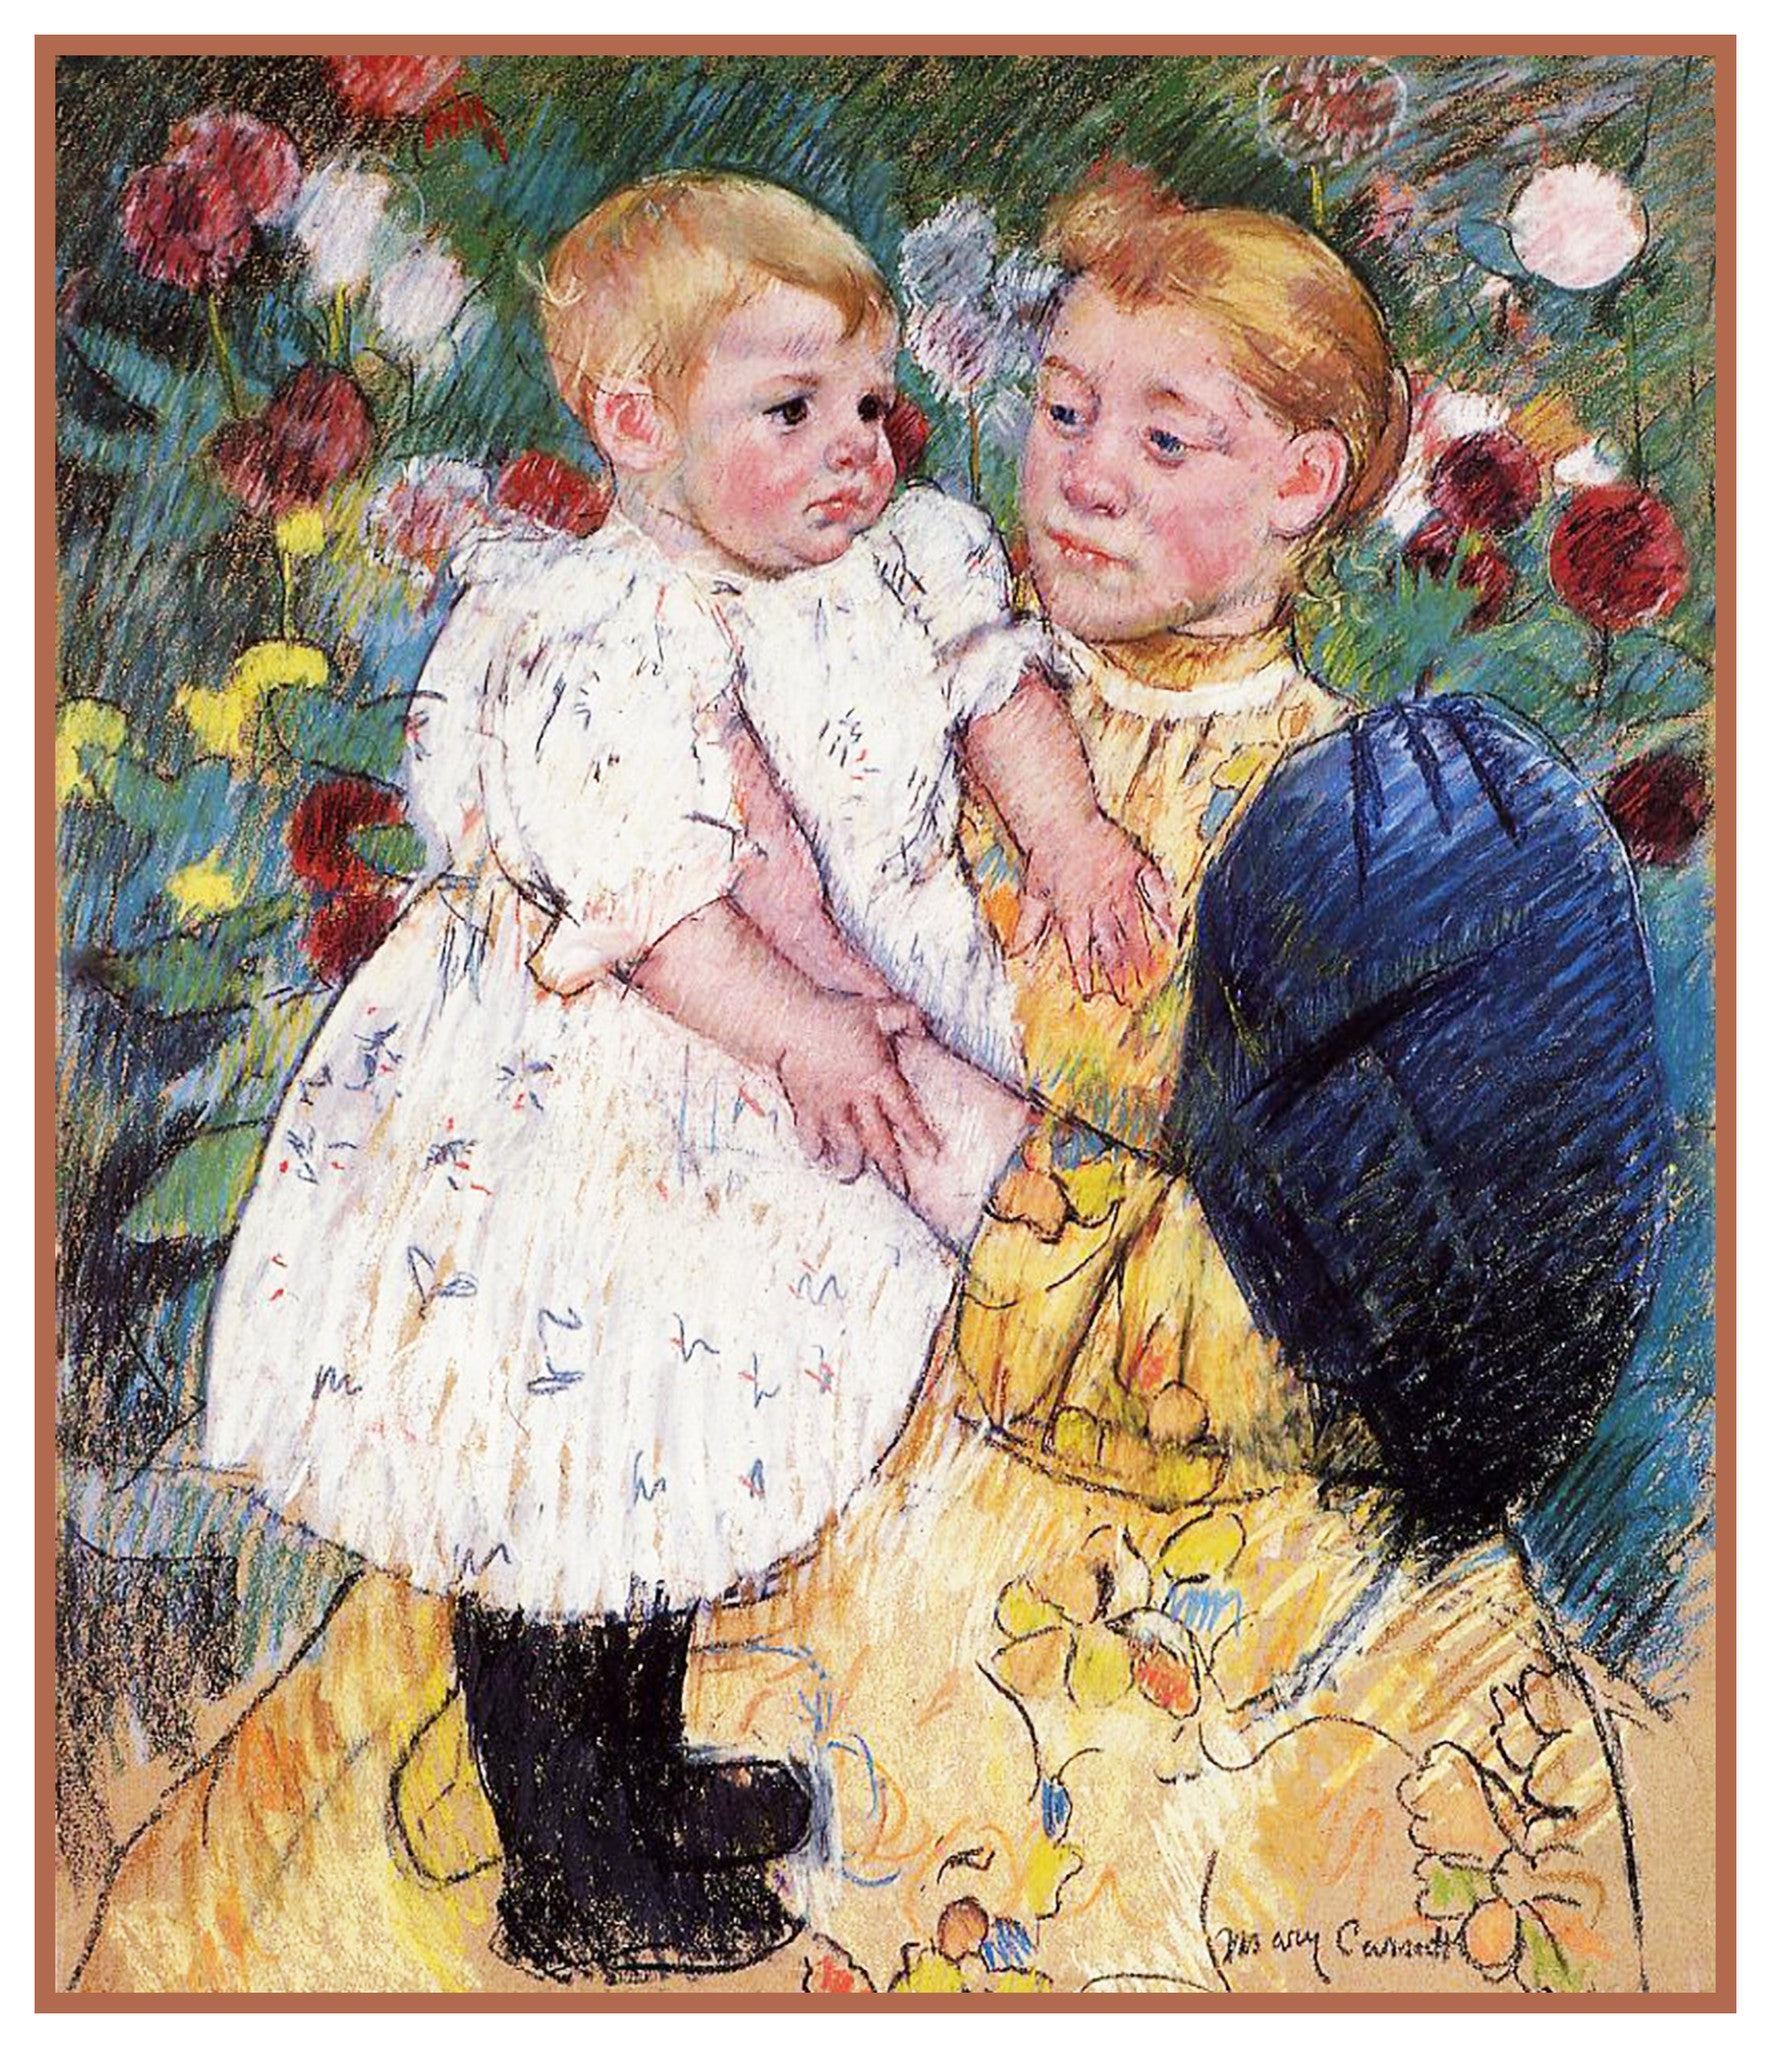 Mother Baby In The Garden By American Impressionist Artist Mary Cassatt Counted Cross Stitch Or Needlepoint Pattern